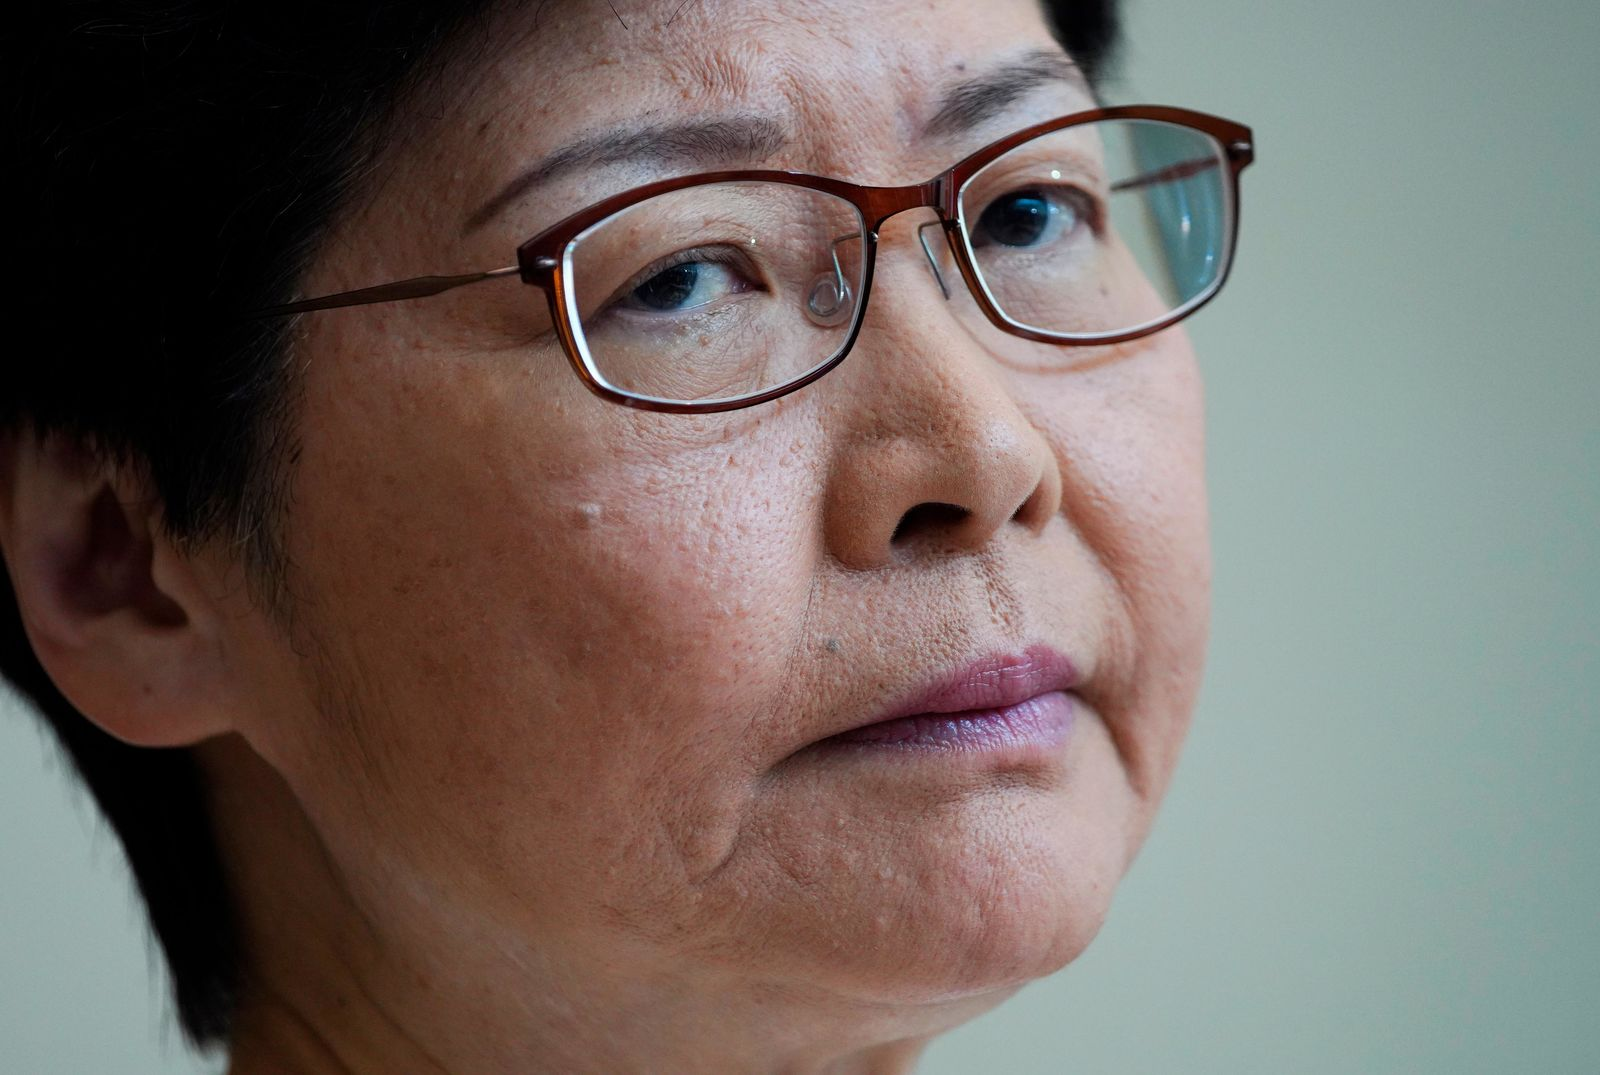 Hong Kong Chief Executive Carrie Lam, listens to reporters questions during a press conference at the government building in Hong Kong Tuesday, Sept. 10, 2019. (AP Photo/Vincent Yu)